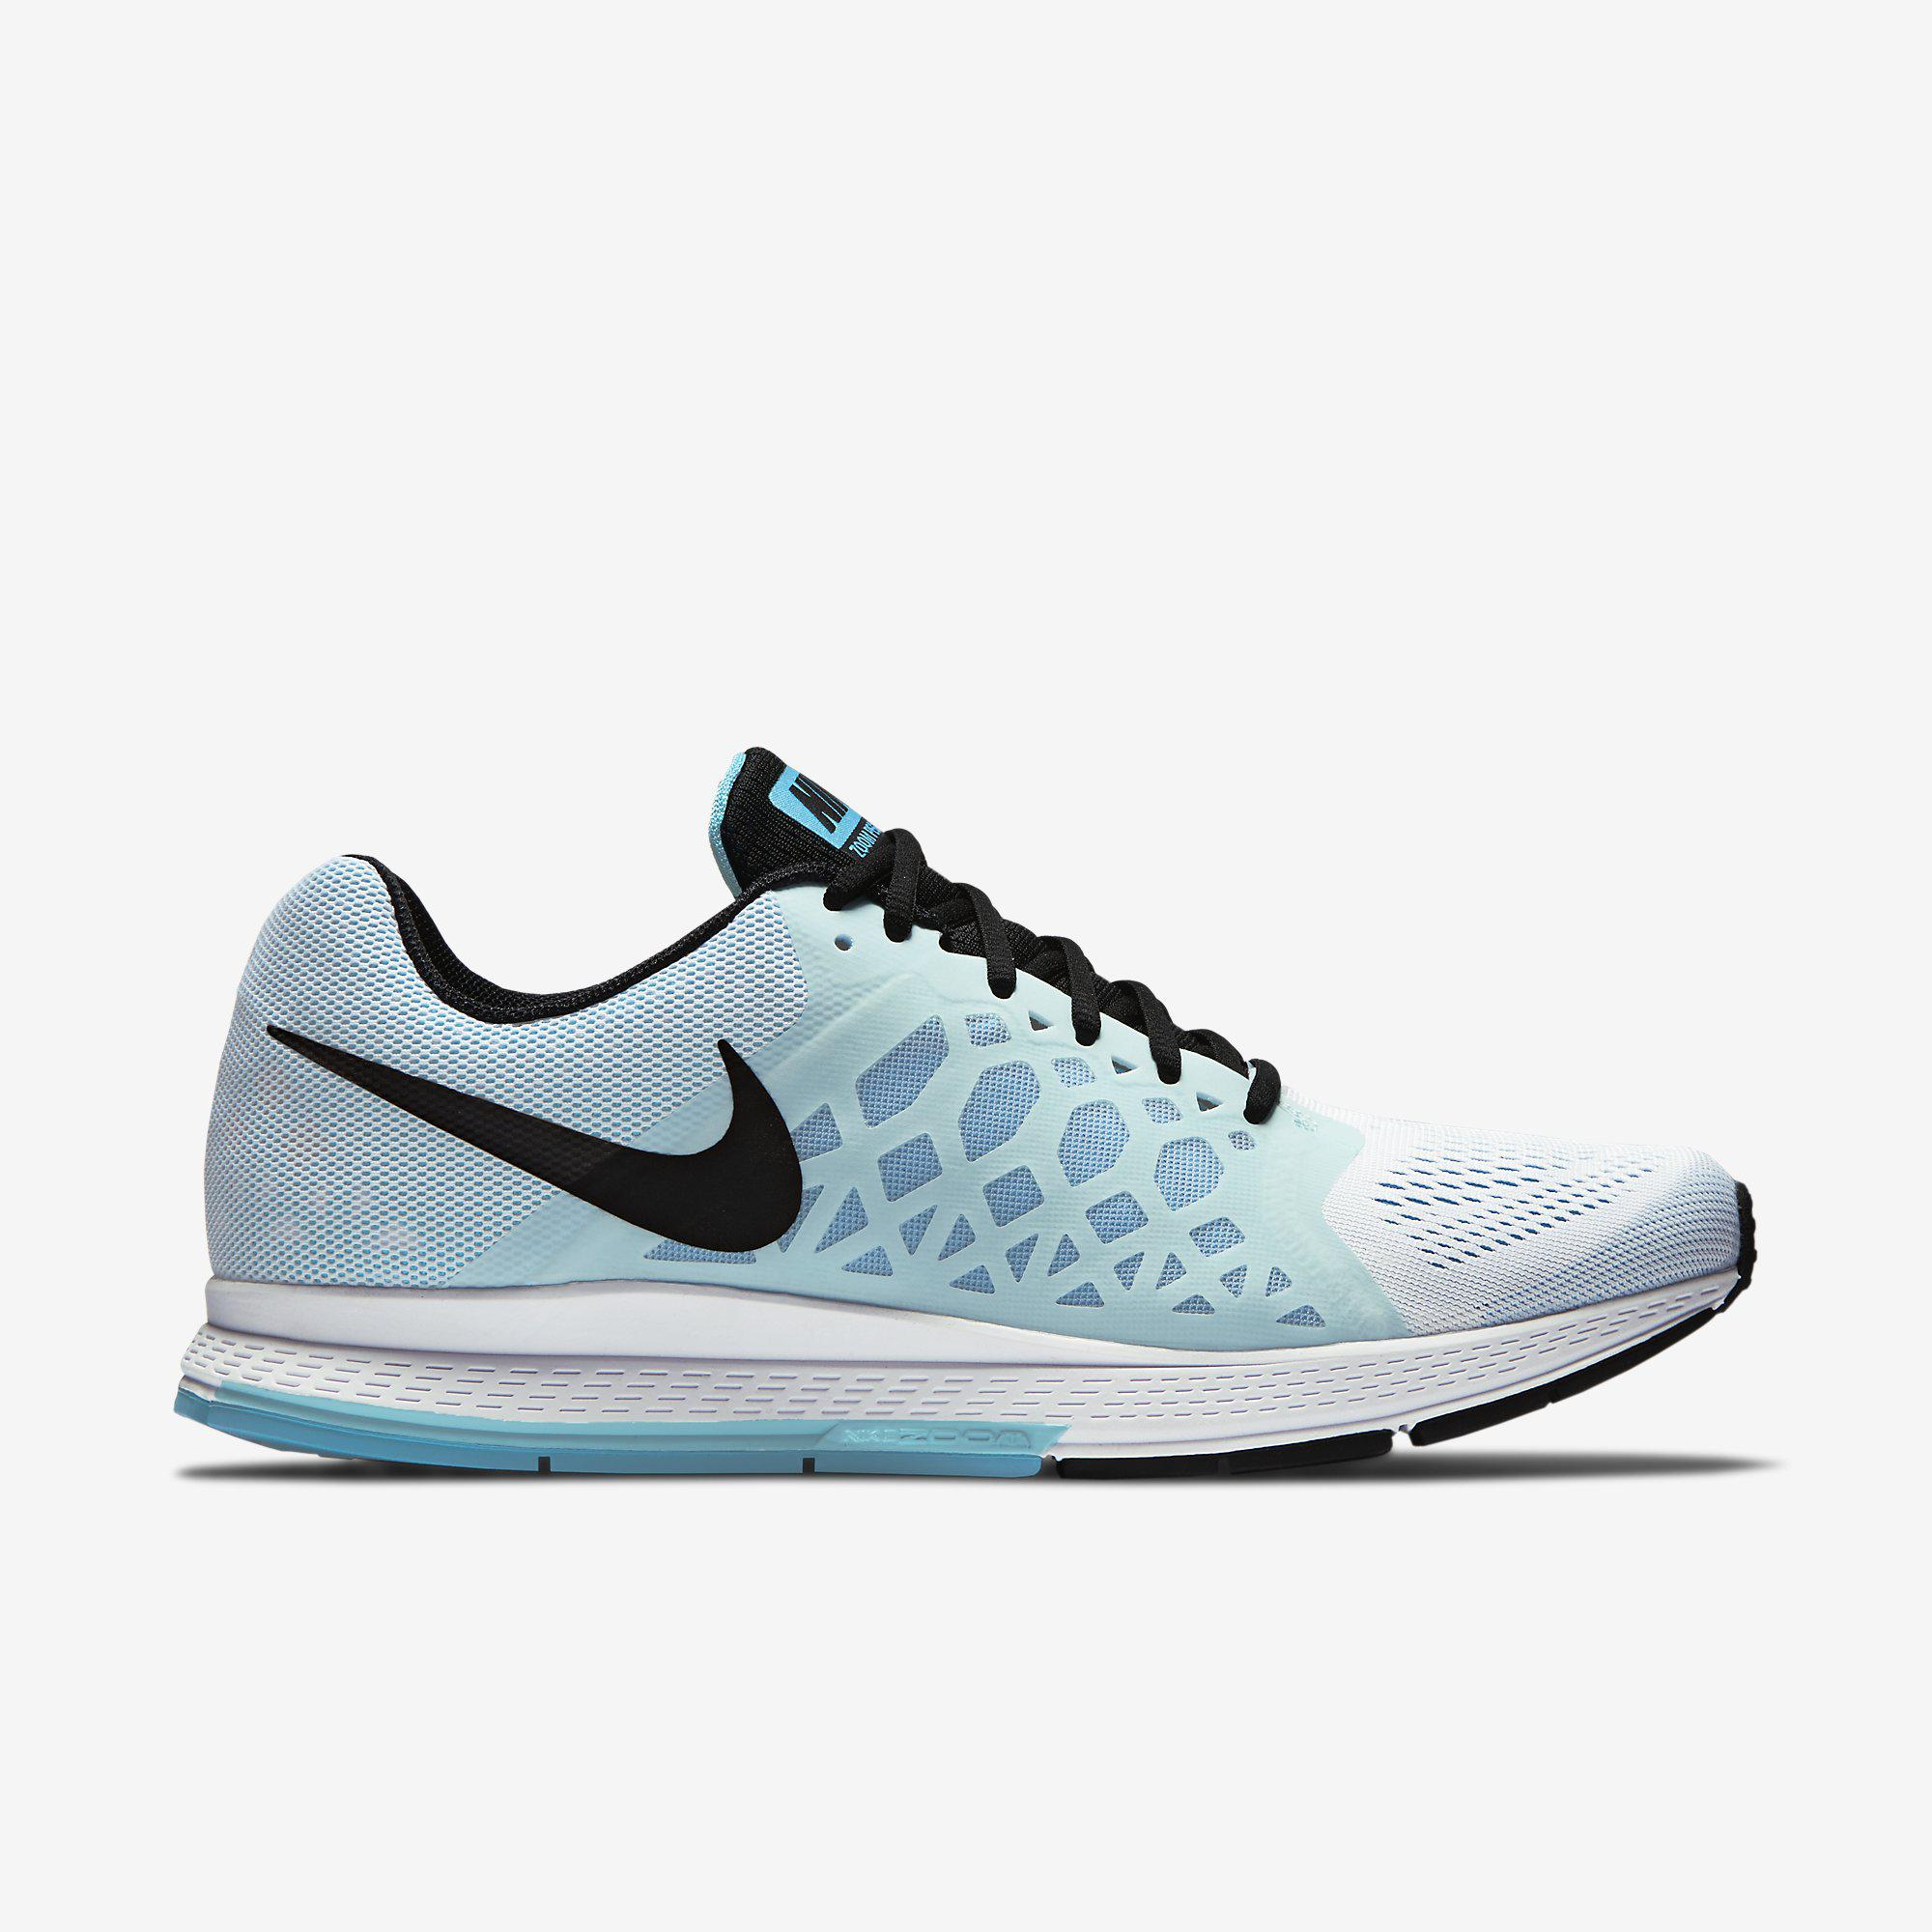 sneakers for cheap 33661 bbd83 Nike Mens Air Zoom Pegasus+31 Running Shoes - White Blue - Tennisnuts.com